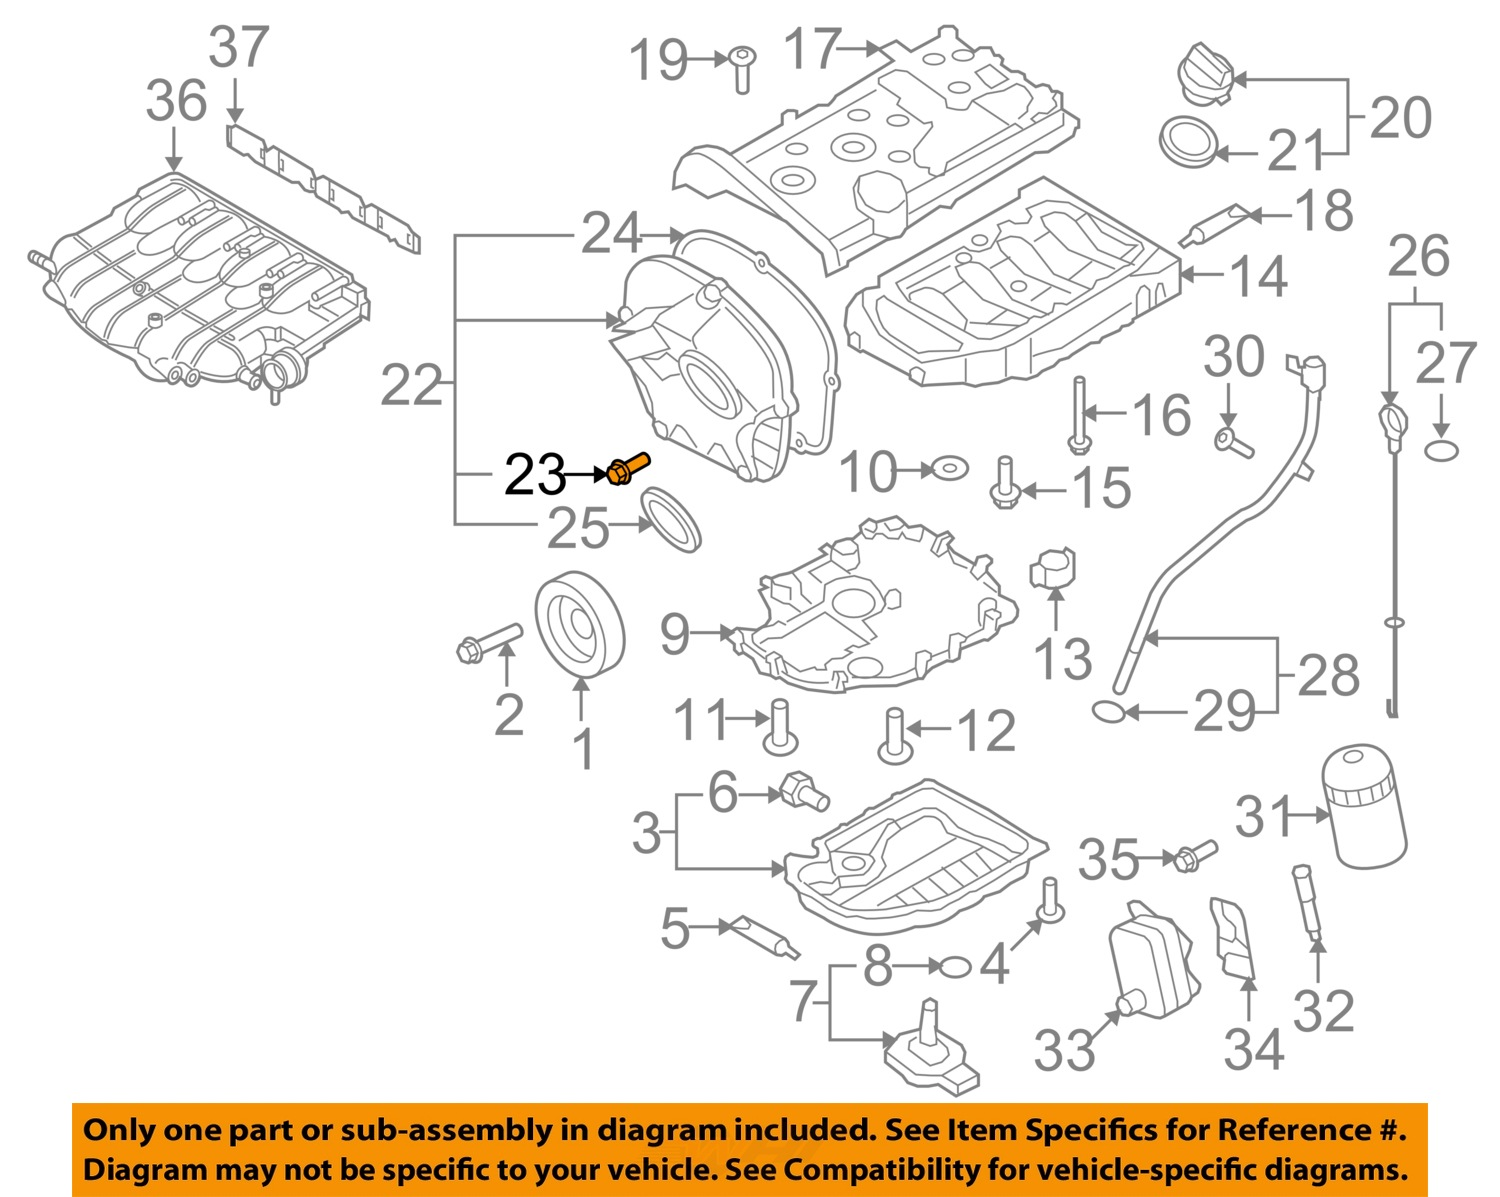 vw tiguan engine parts diagram vw volkswagen oem 09-16 tiguan engine parts-timing cover ... 2003 vw passat engine parts diagram